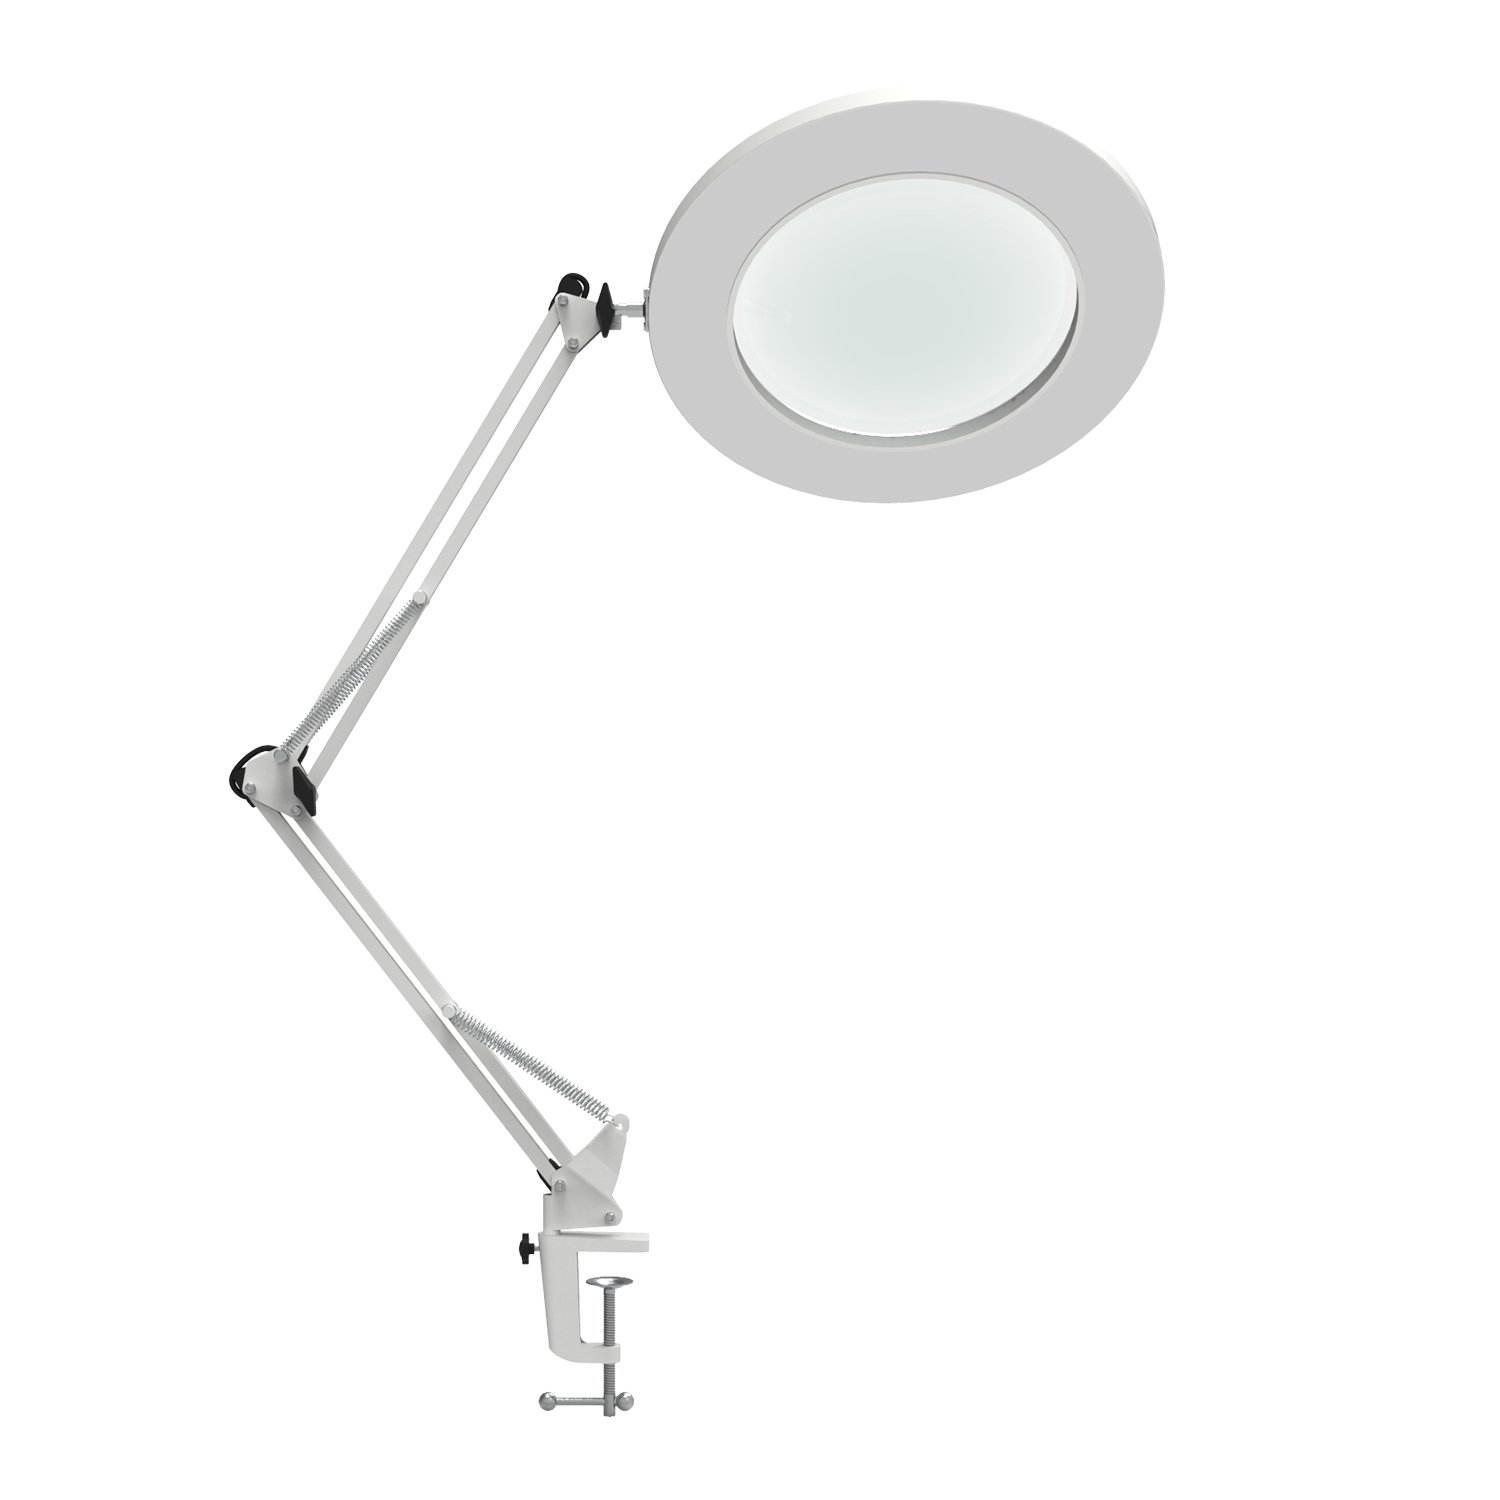 "YOUKOYI LED Magnifying Lamp Metal Swing Arm Magnifier Lamp - Stepless Dimming, 3 Color Modes, 5X Magnification, 4.1"" Diameter Glass Lens, Adjustable Industrial Clamp for Reading/Office/Work (White)"